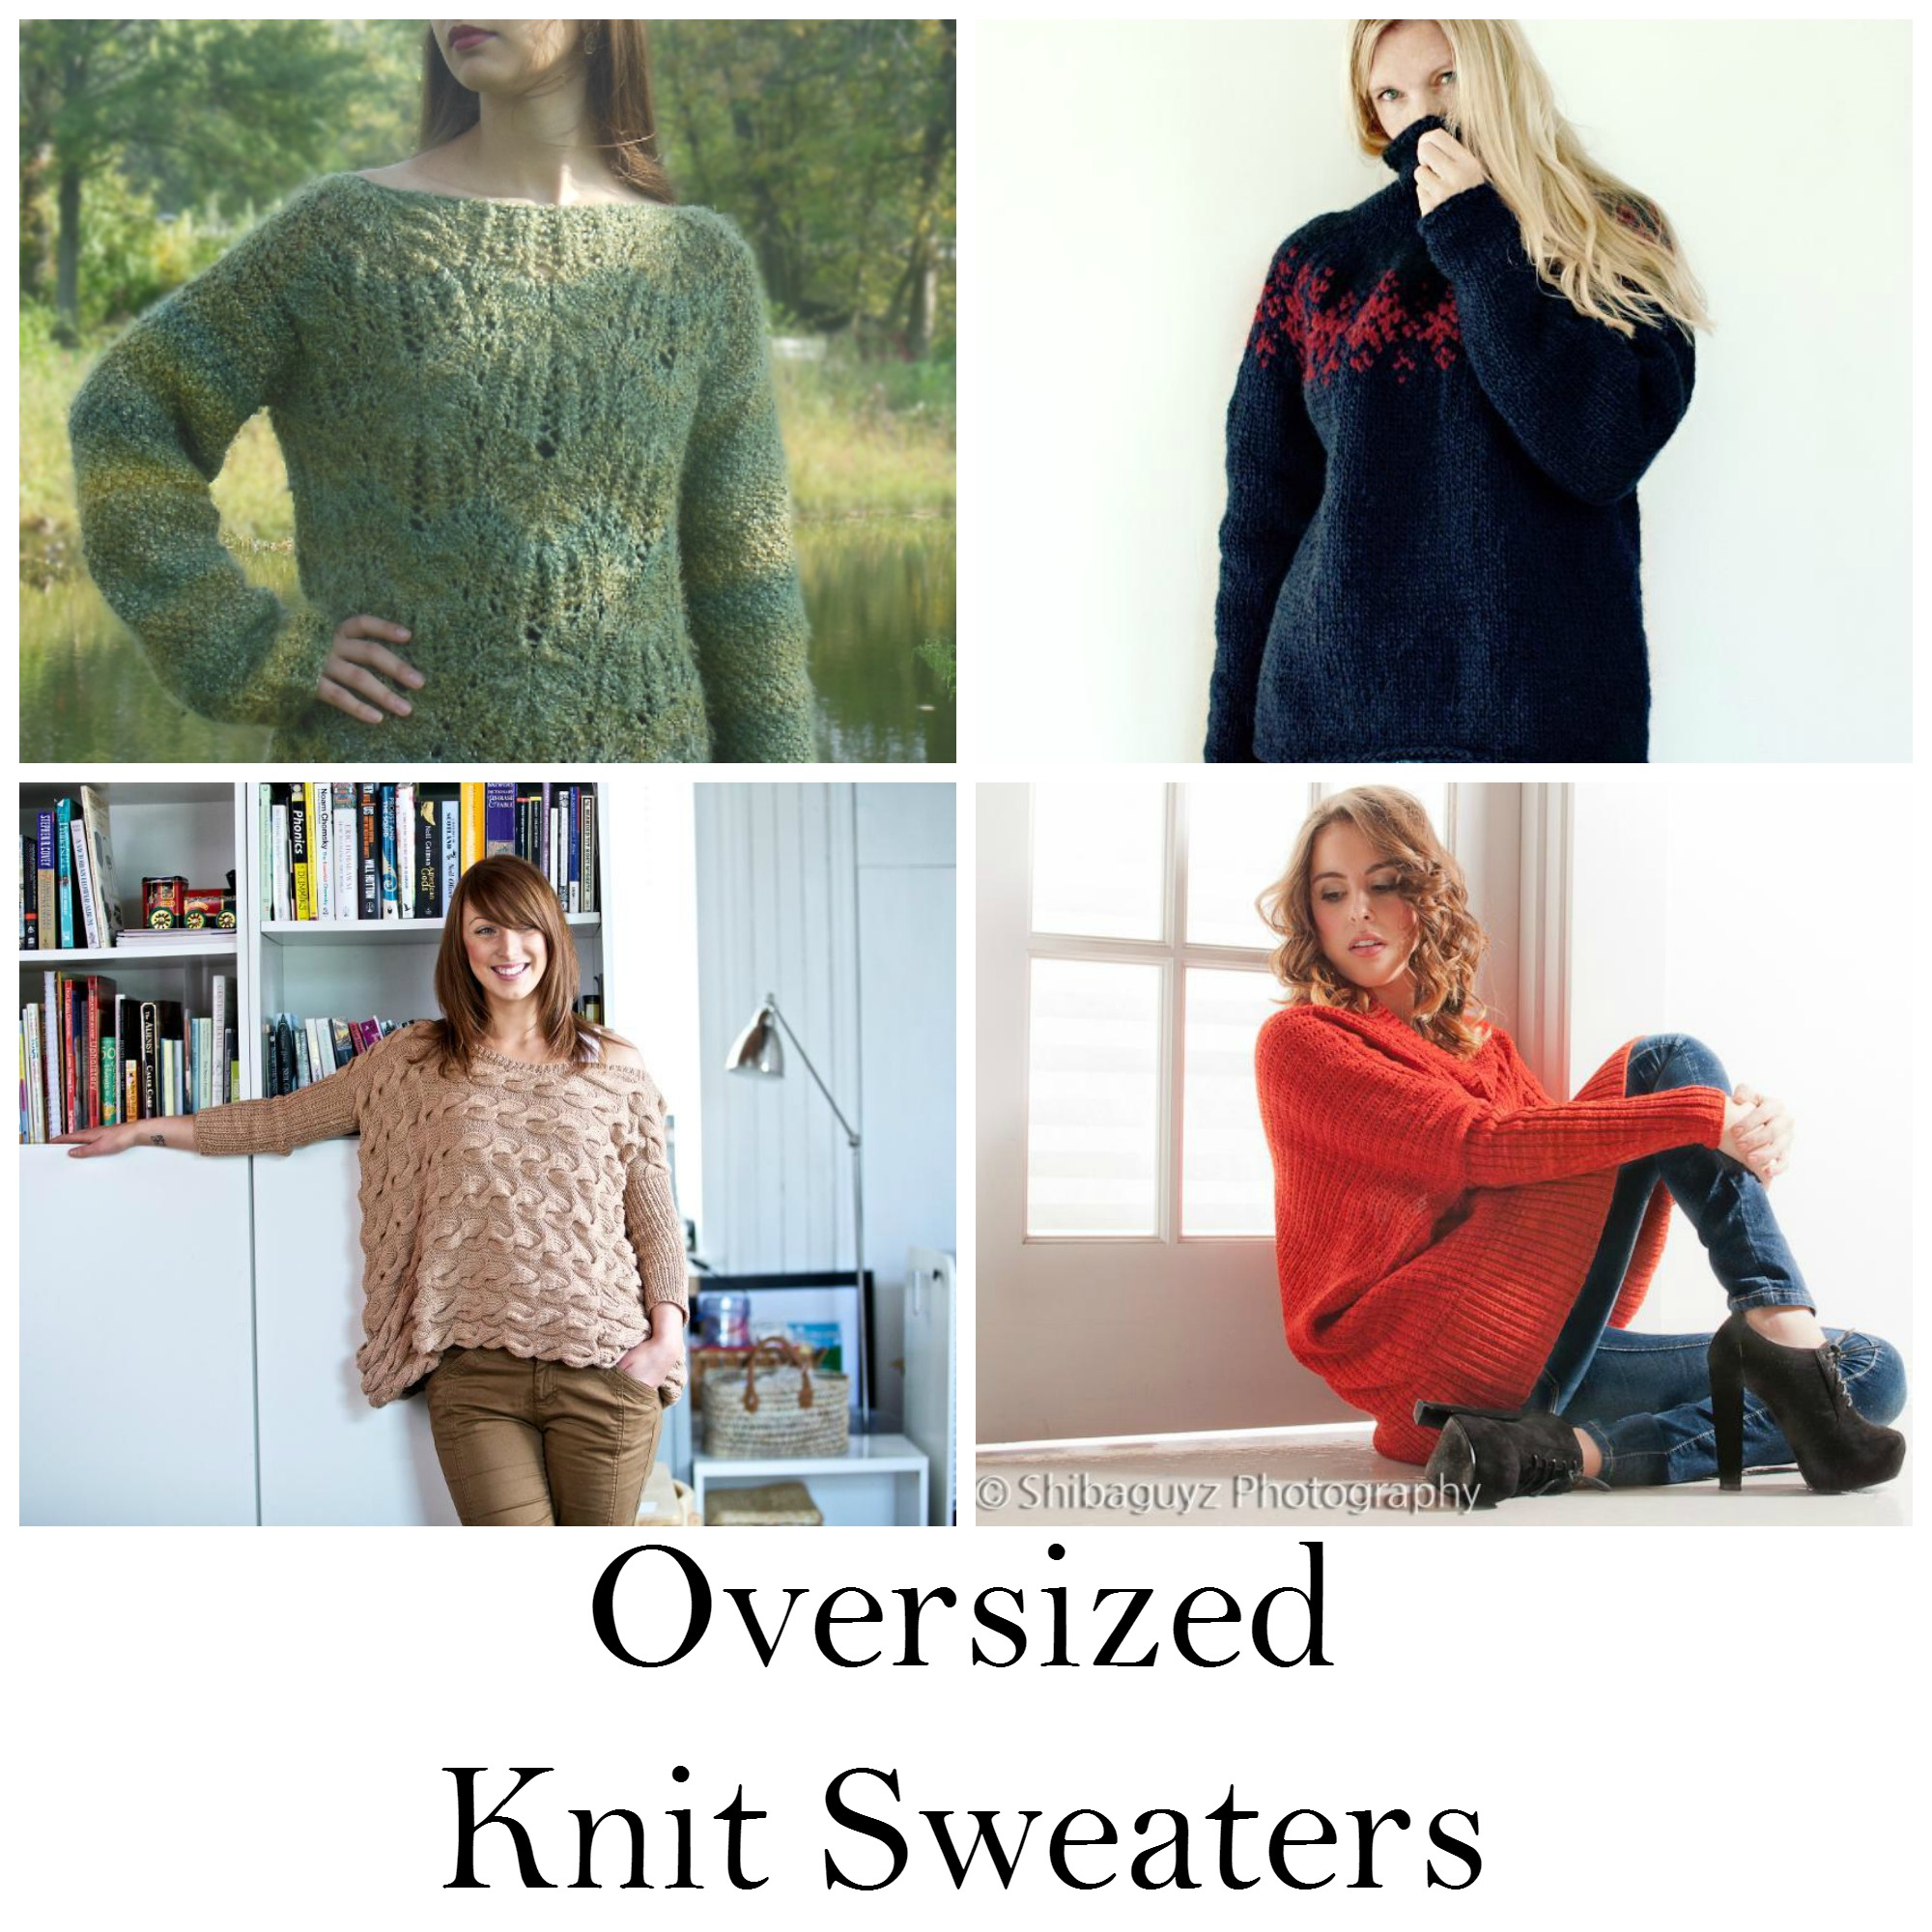 Free Sweater Patterns To Knit 9 Patterns For Oversized Knit Sweaters On Craftsy